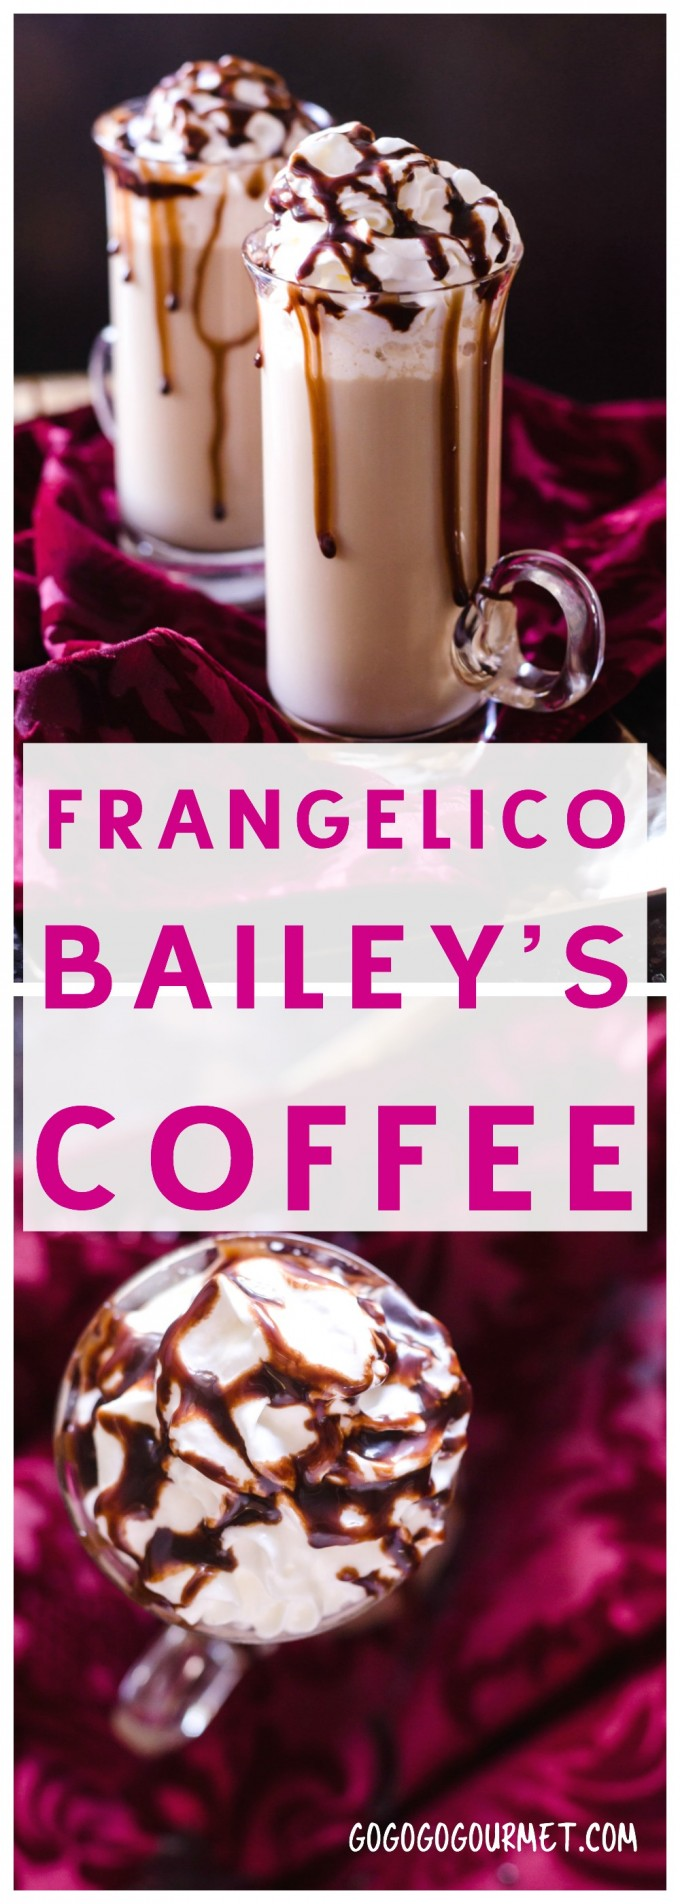 Frangelico Bailey's Coffee via @gogogogourmet